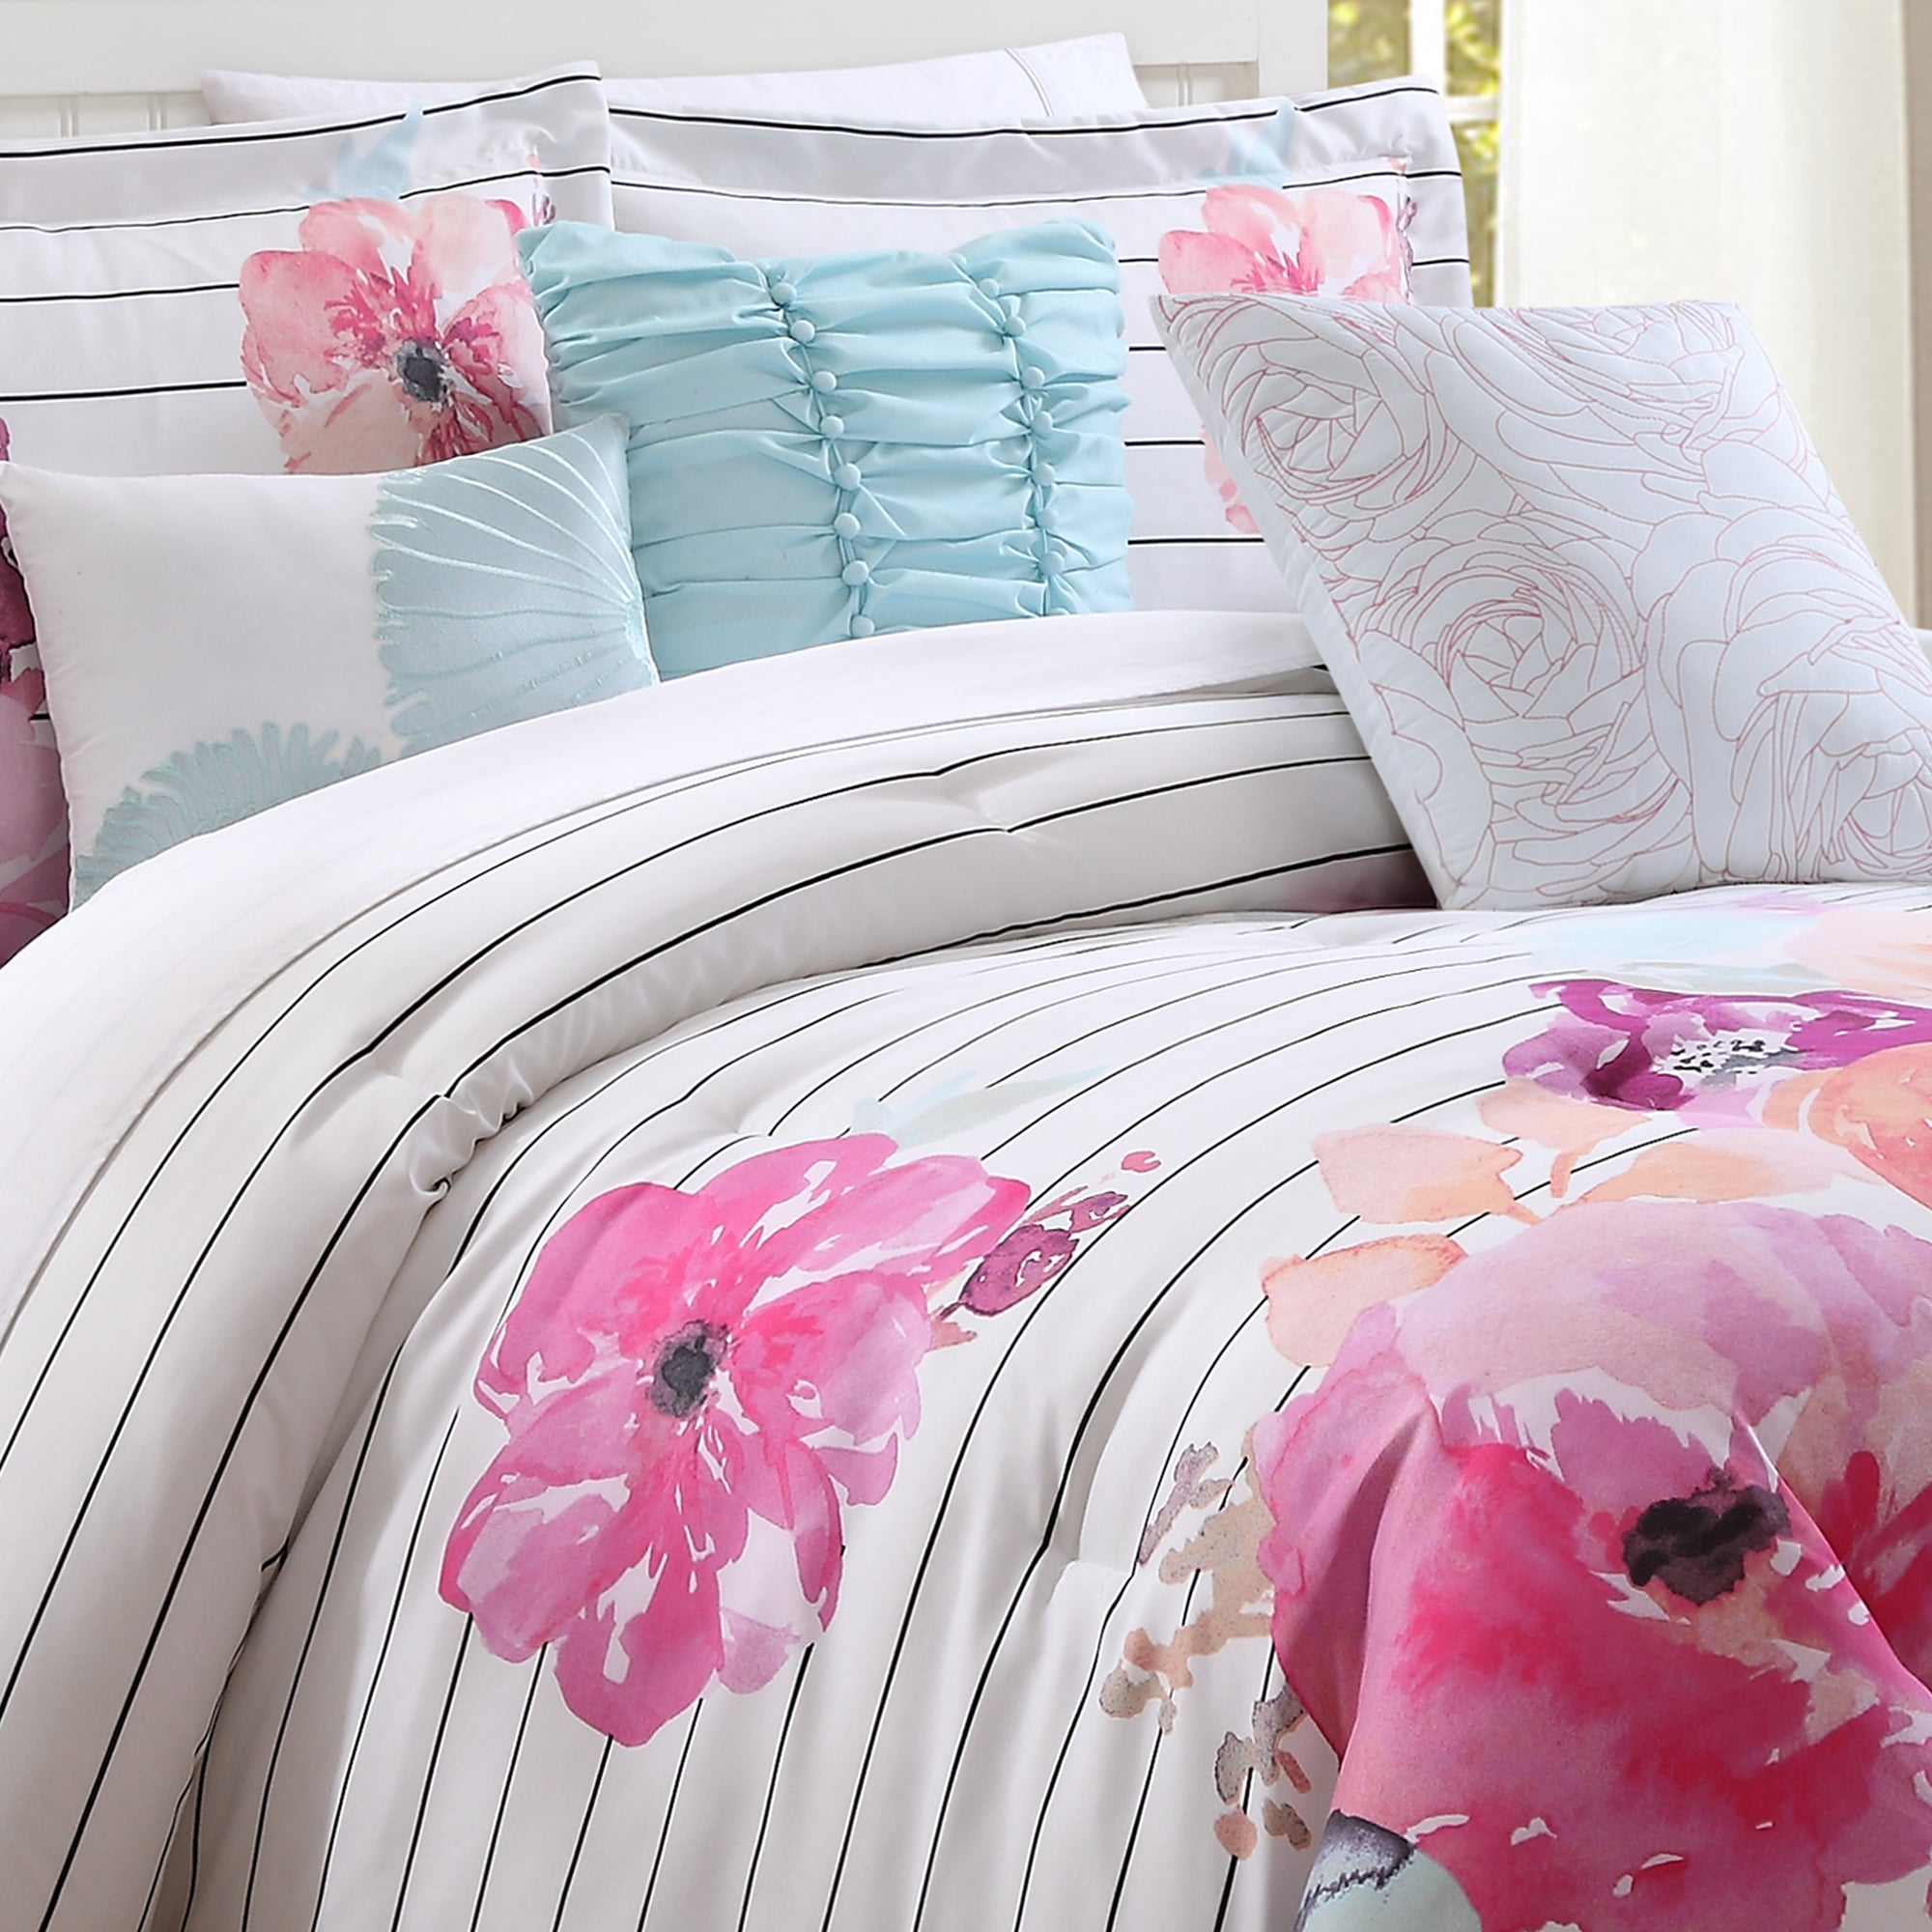 high set sheet comforter bedspreads linen bedding end floral grey and buy full bed thread size online cover cheap of count sheets white quality pretty sets comforters discount